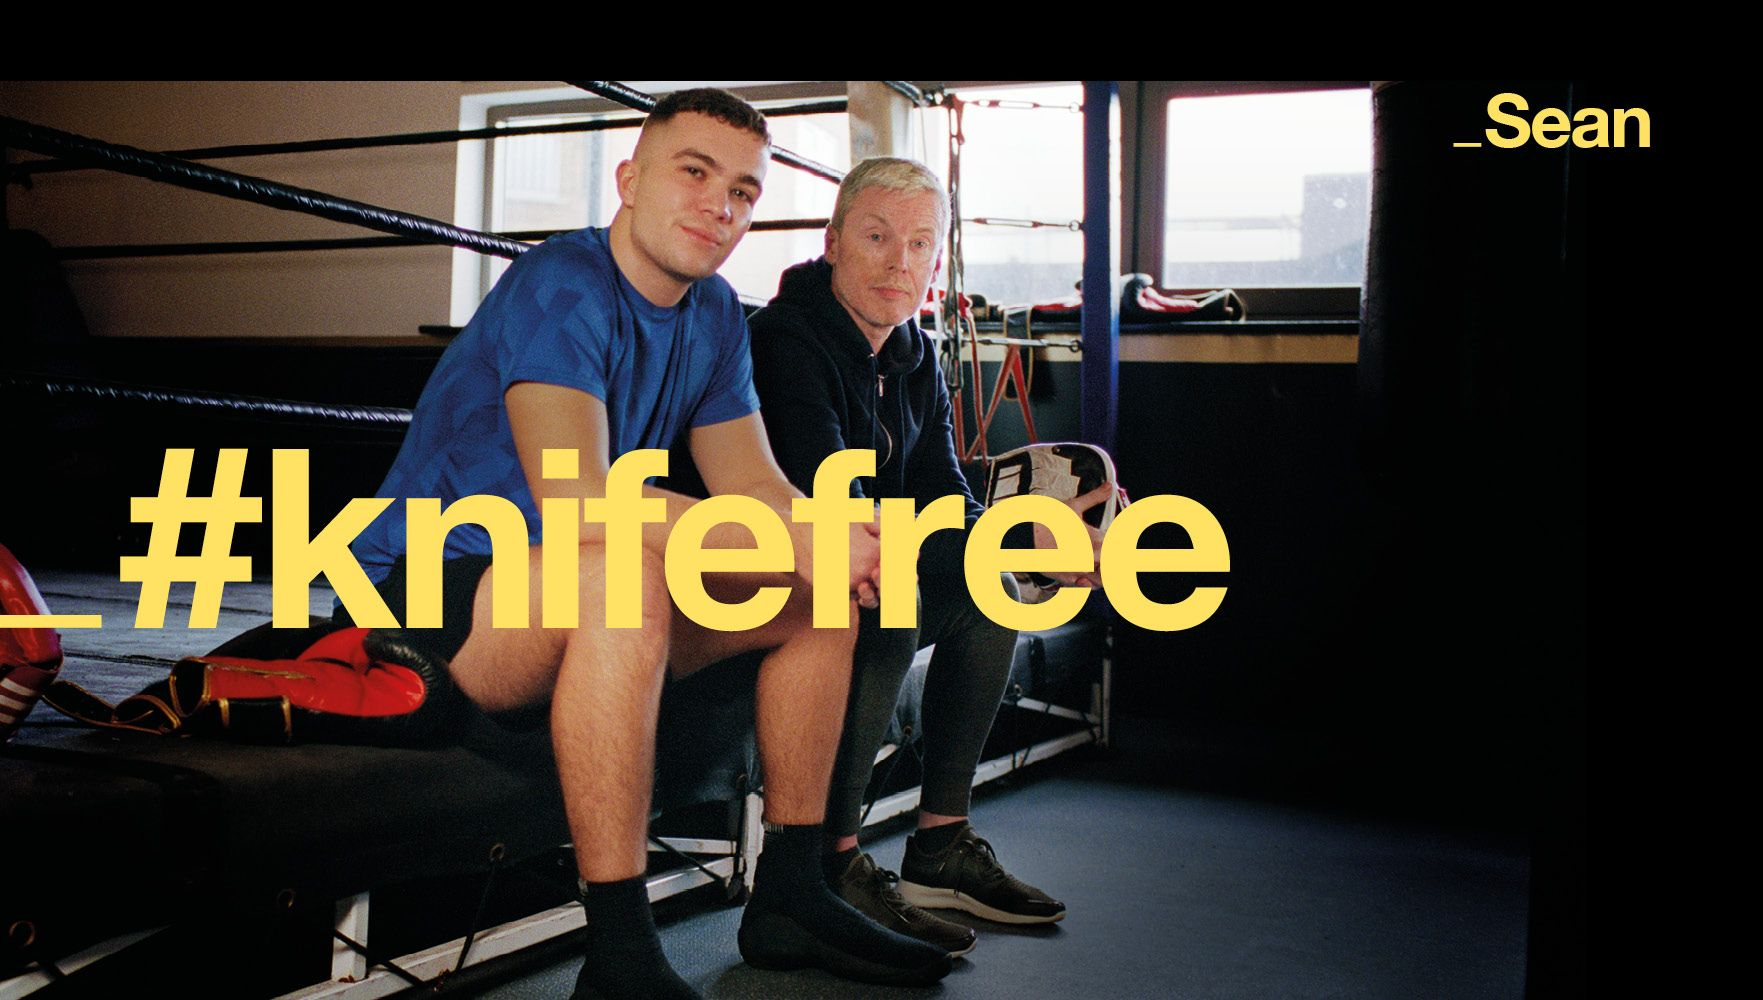 two men from anti knife crime campaign sit on the edge of a boxing ring with #knifefree superimposed on top